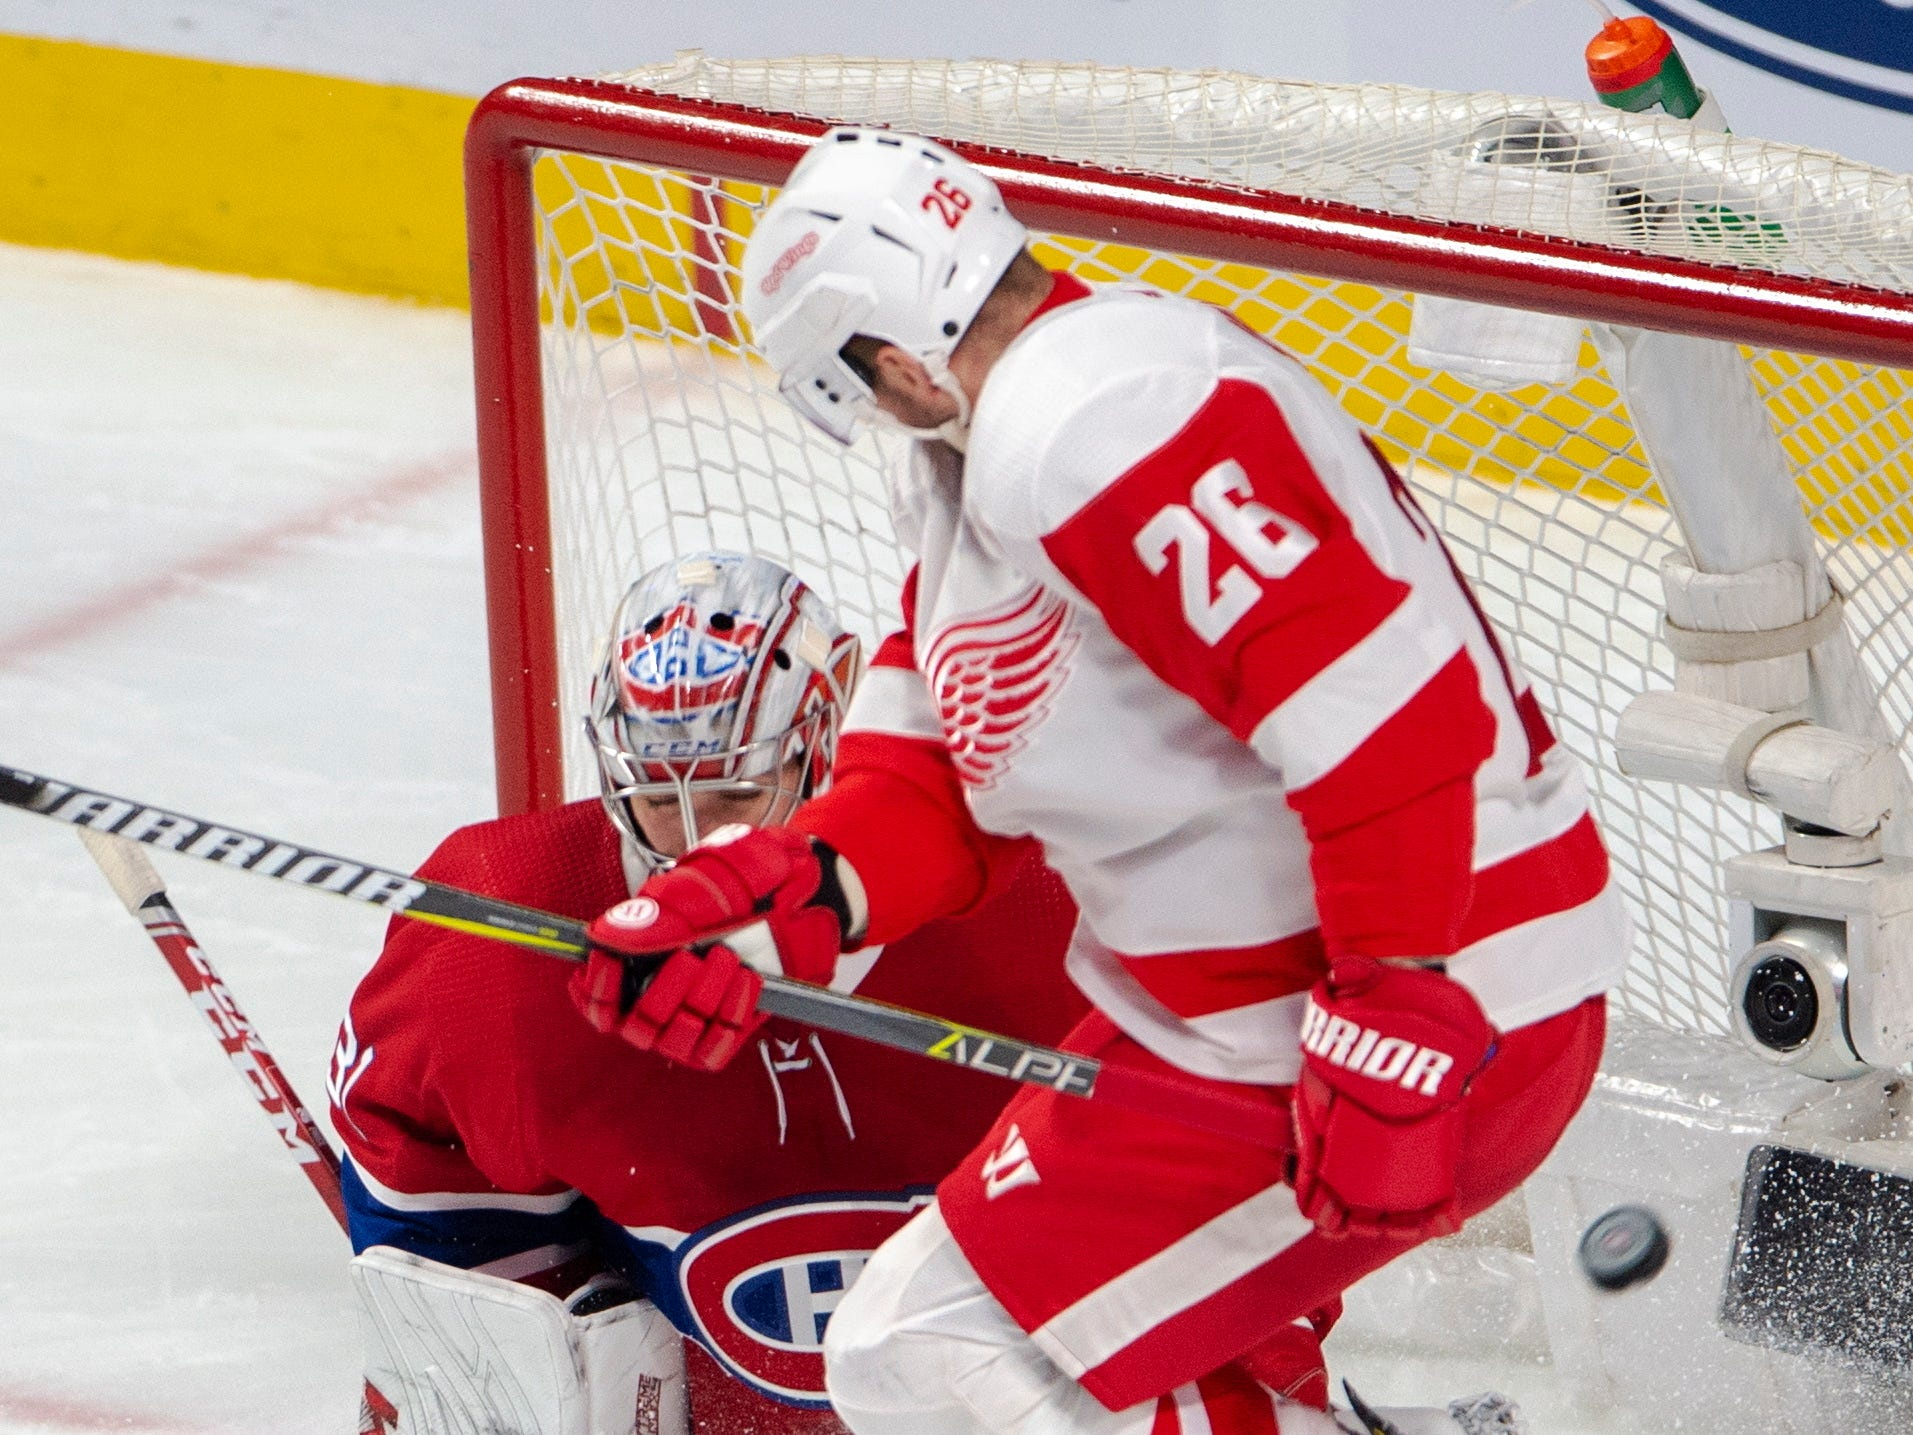 Detroit Red Wings left wing Thomas Vanek jumps in front of Montreal Canadiens goaltender Carey Price during the first period Tuesday, March 12, 2019, in Montreal.